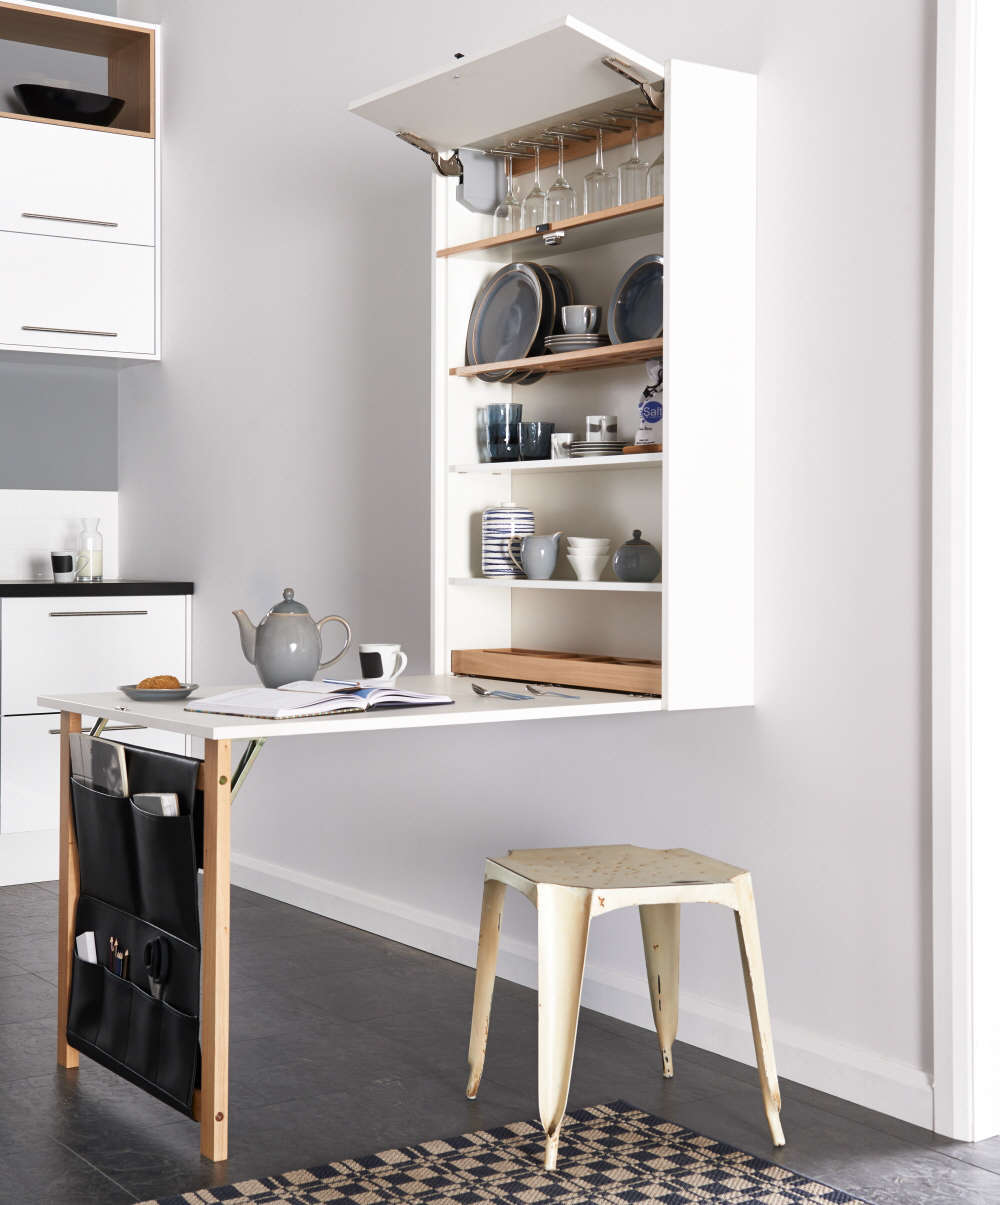 Concealed dining and storage: TheTable Plusfrom UK-based Magnet Kitchens folds against the wall when not in use. See also Tricks for Maximizing Space in a Tiny Kitchen, Urban Edition.